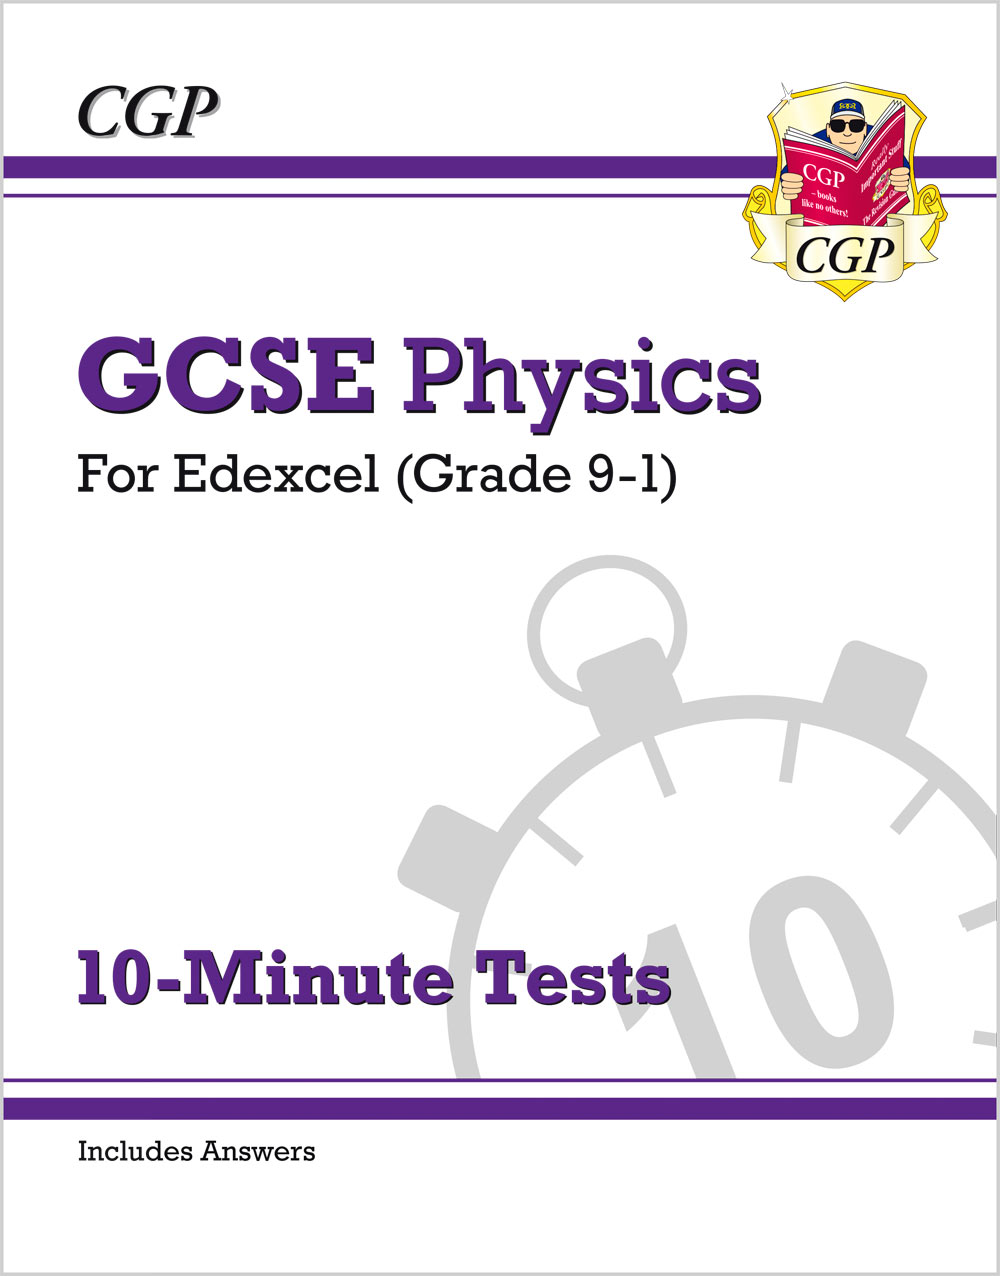 PEXP41 - Grade 9-1 GCSE Physics: Edexcel 10-Minute Tests (with answers)